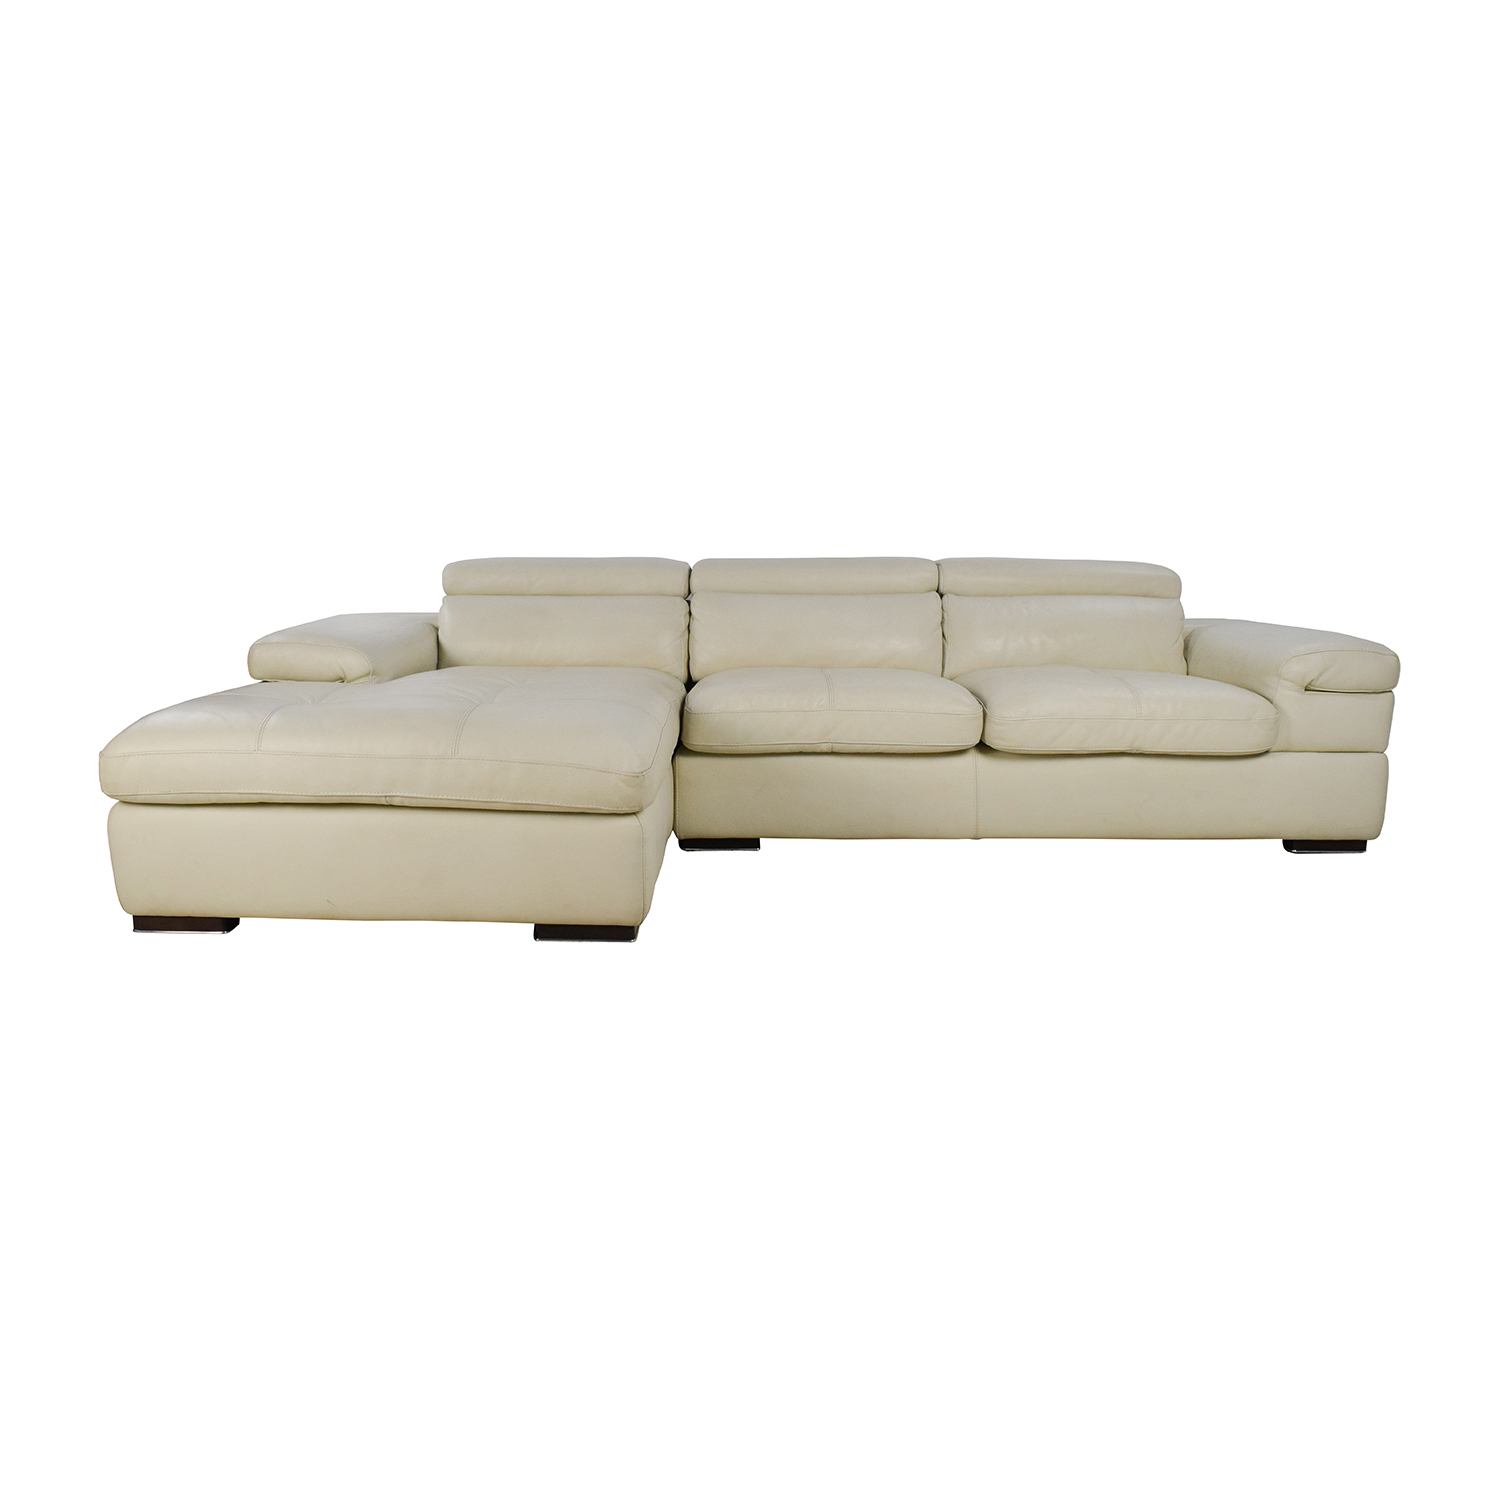 L-Shaped Cream Leather Sectional Sofa coupon